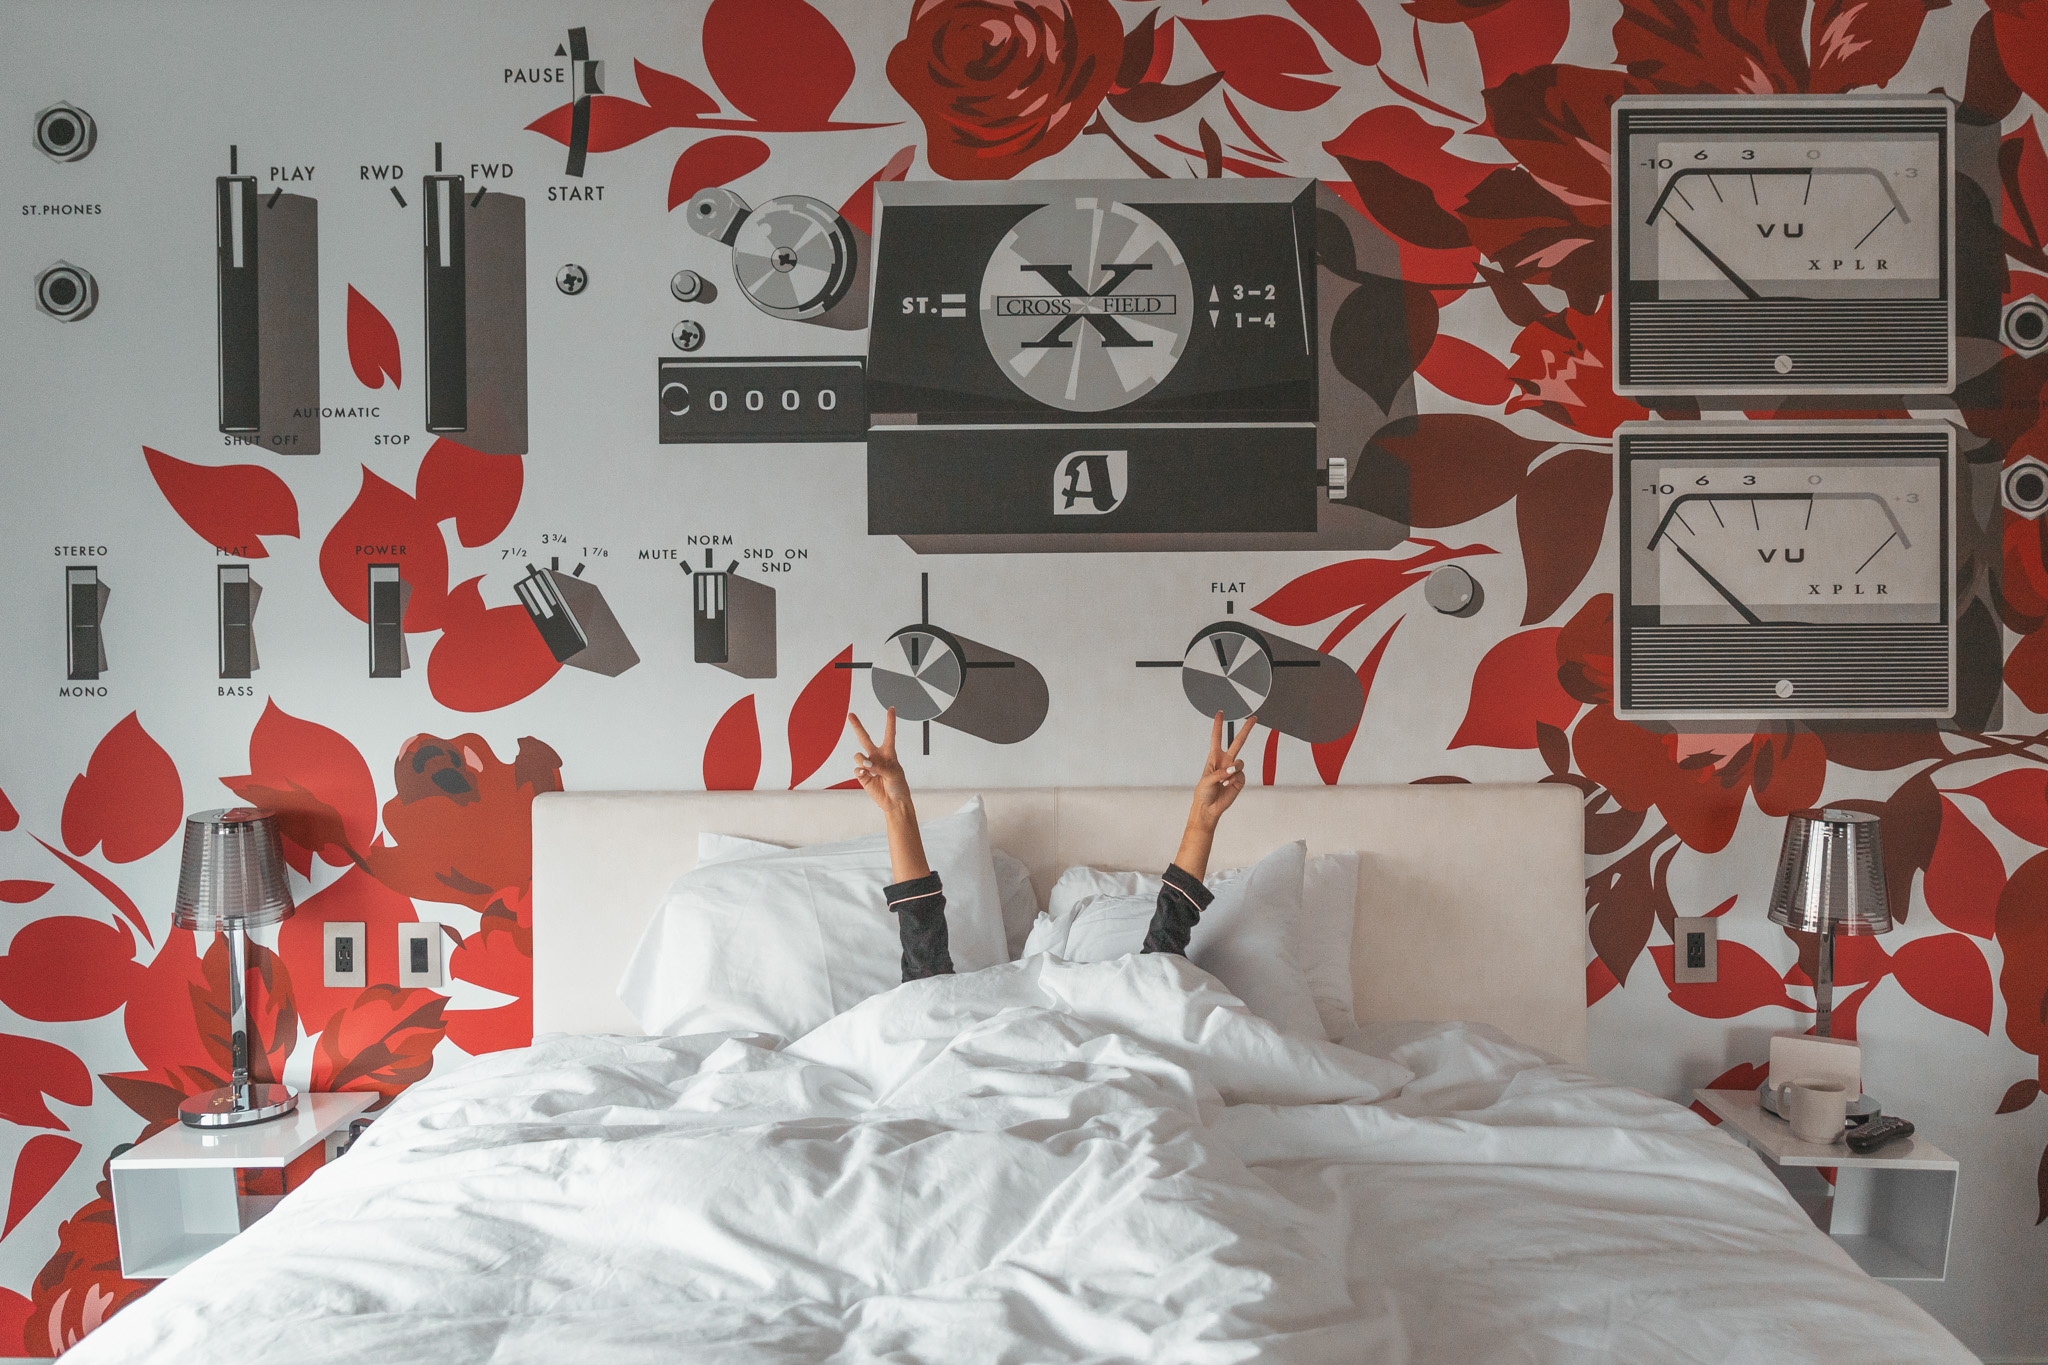 Our room at the Radisson RED Portland // Checking In: The Radisson Red in Downtown Portland, Oregon #readysetjetset #pdx #portland #blogpost #travelguide